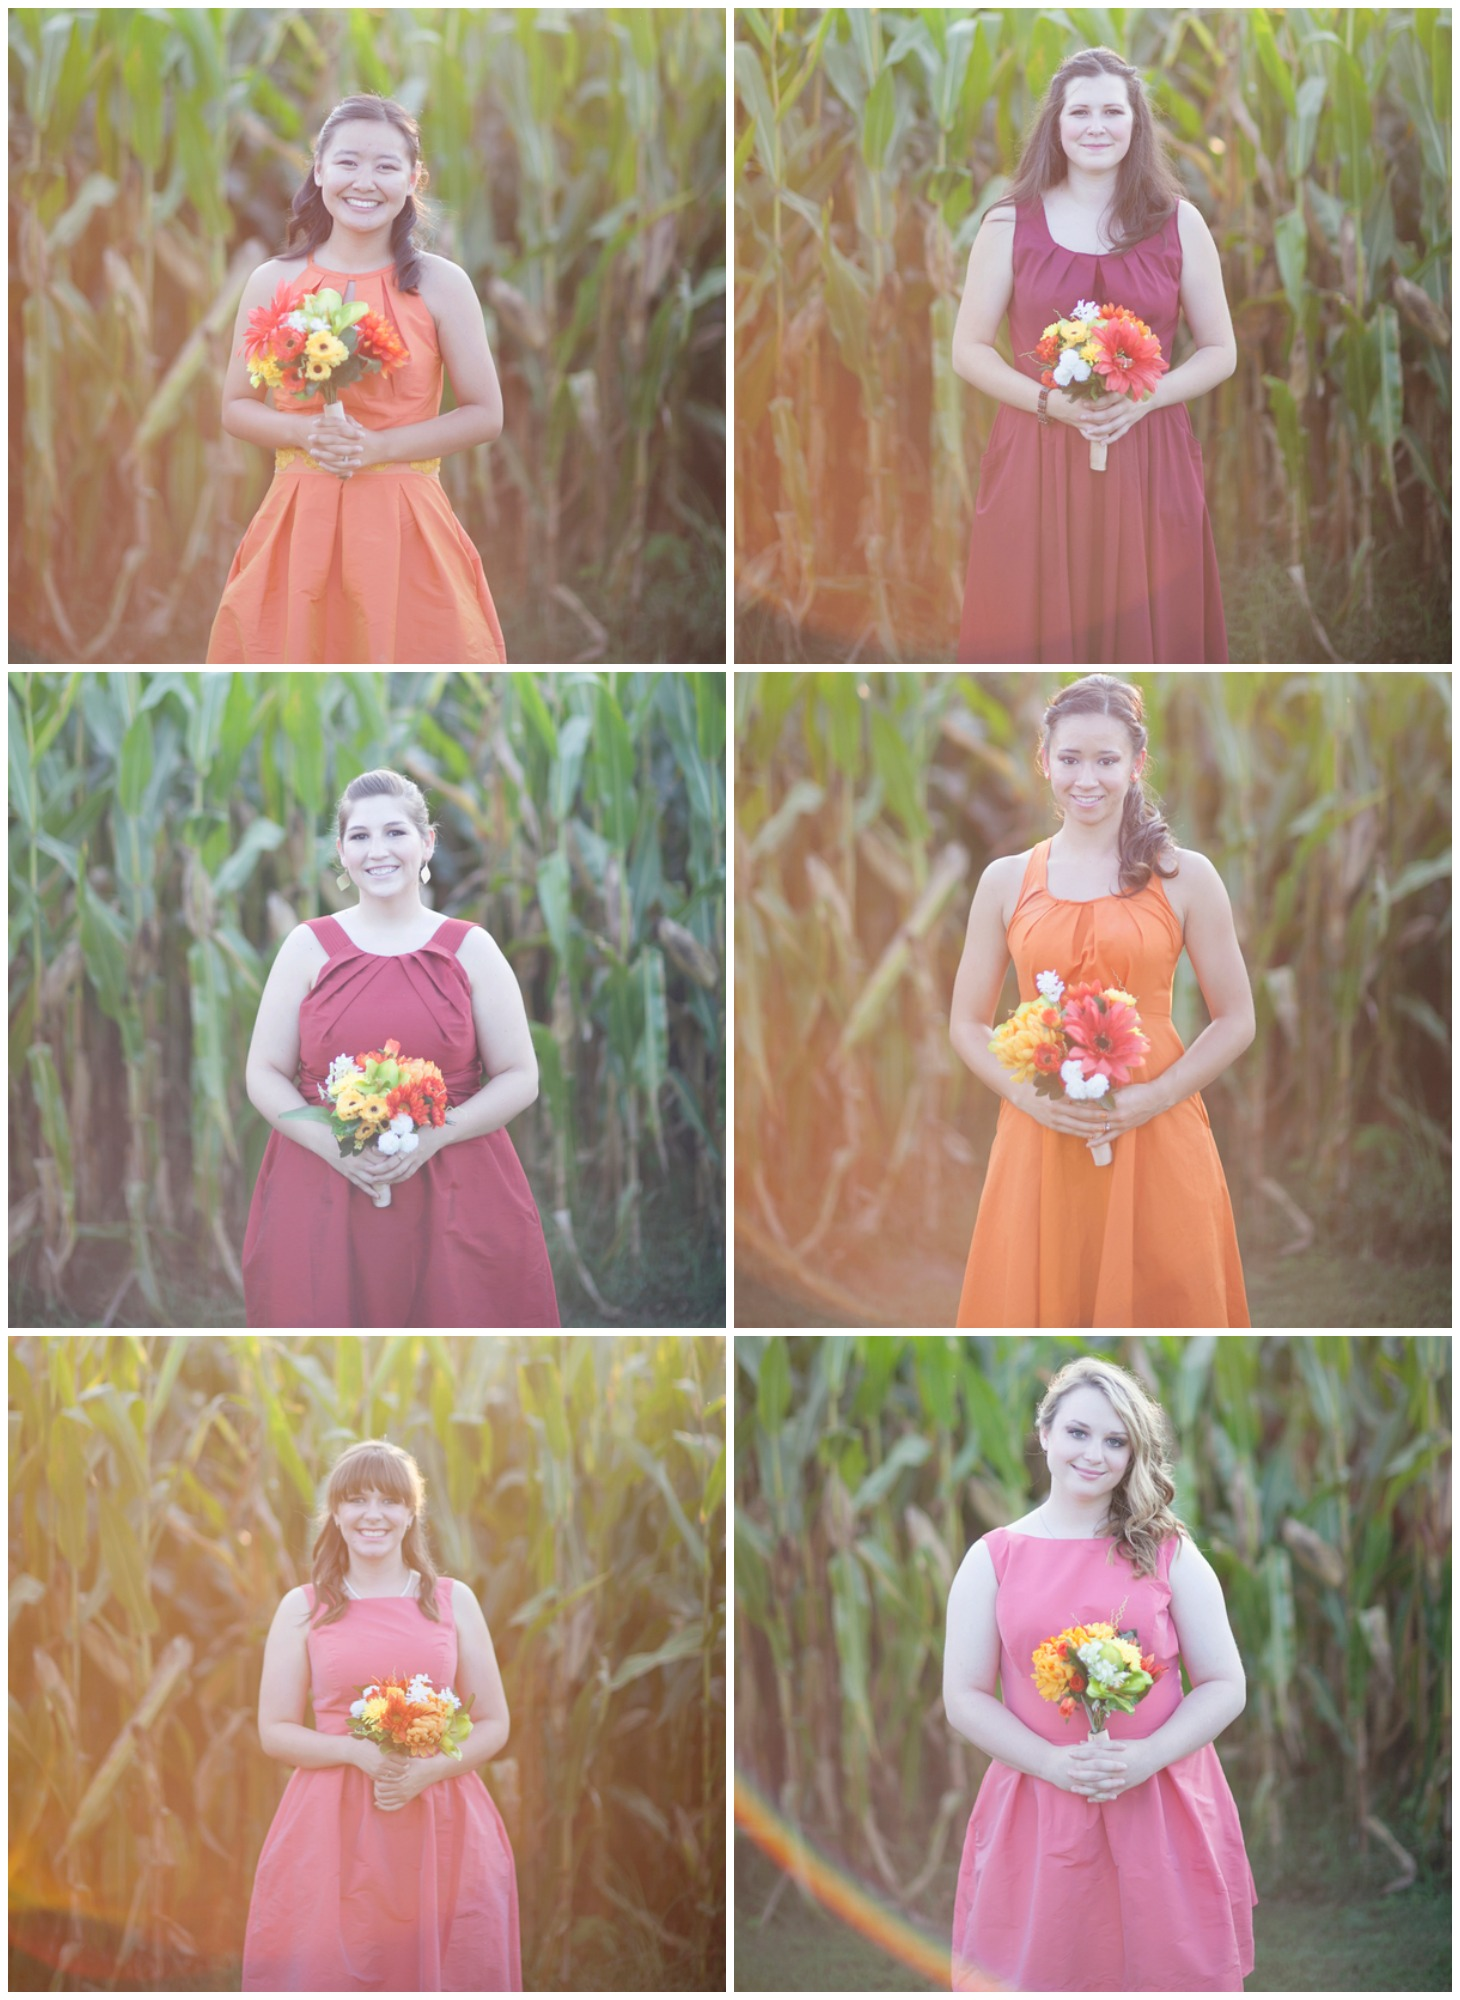 Tate farms wedding in alabama rustic wedding chic for Bright colored wedding dresses